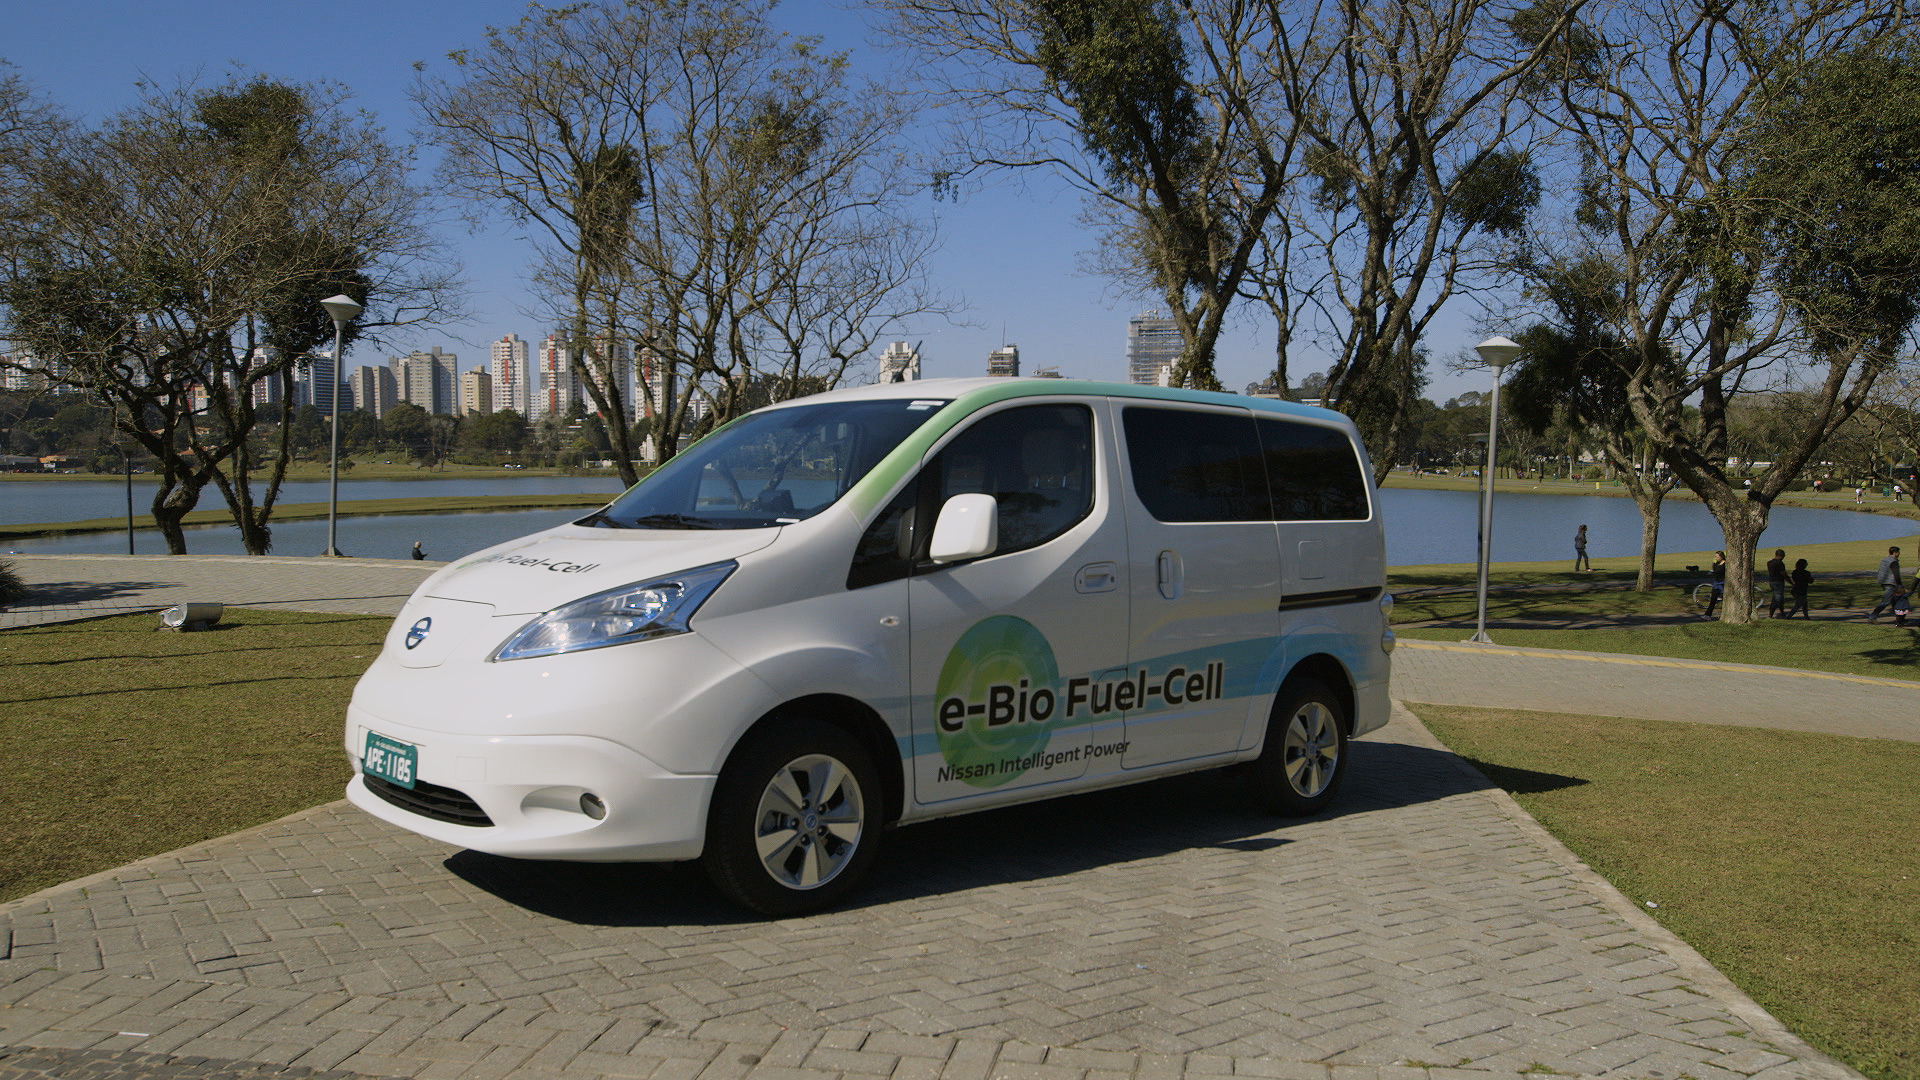 Nissan e-Bio Fuel-Cell Prototype Vehicle © Nissan Motor Co., Ltd.